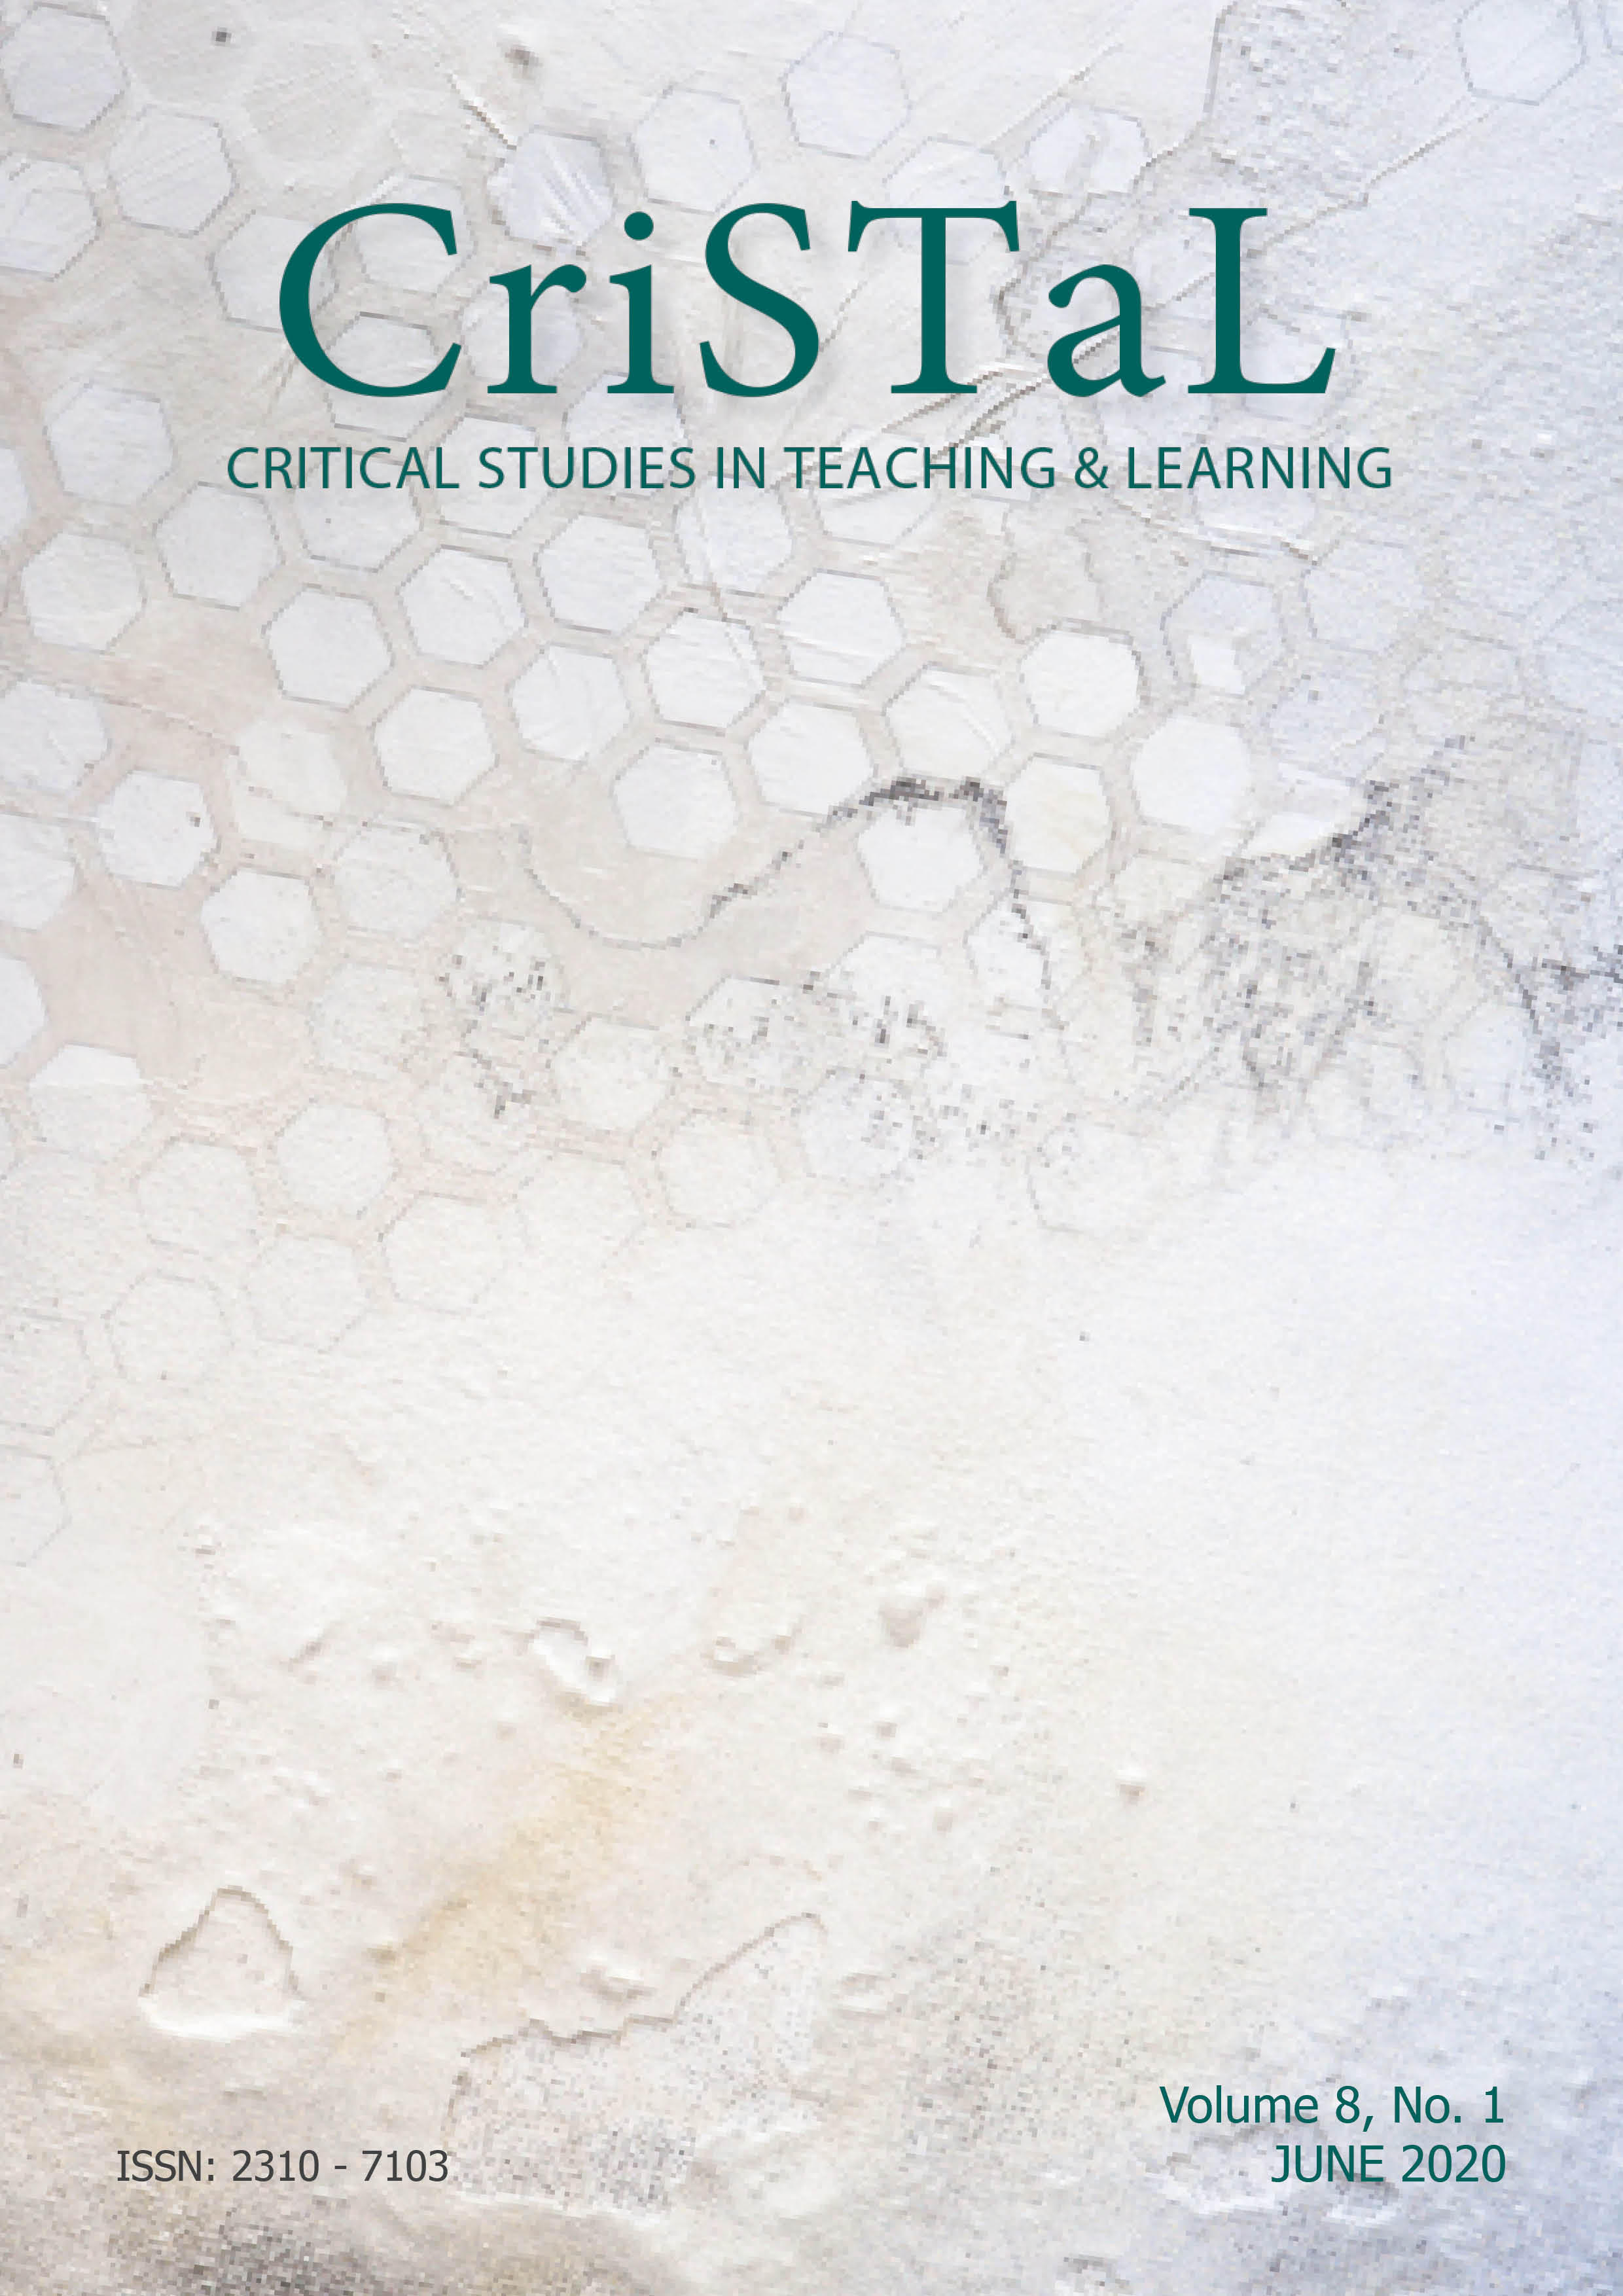 Cover of Vol 8 No 1 issue of CriSTaL